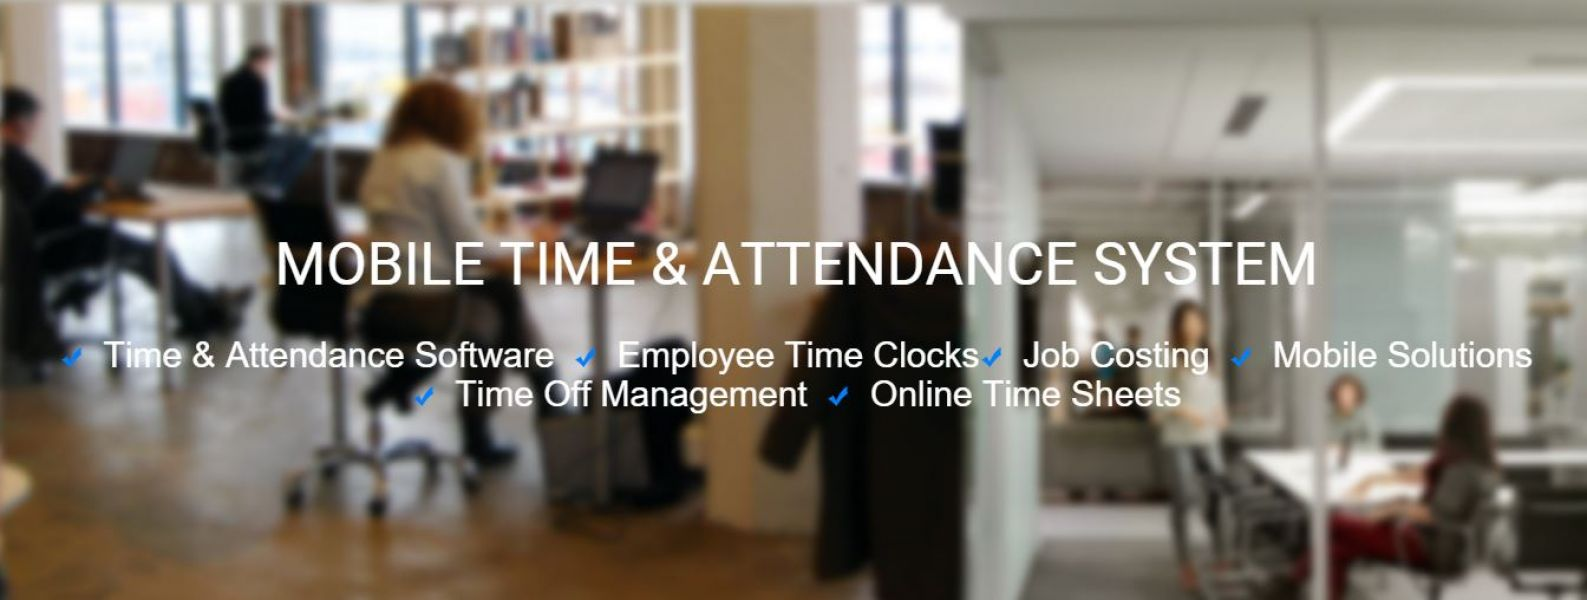 Mobile Time Attendance | Workforce management solutions